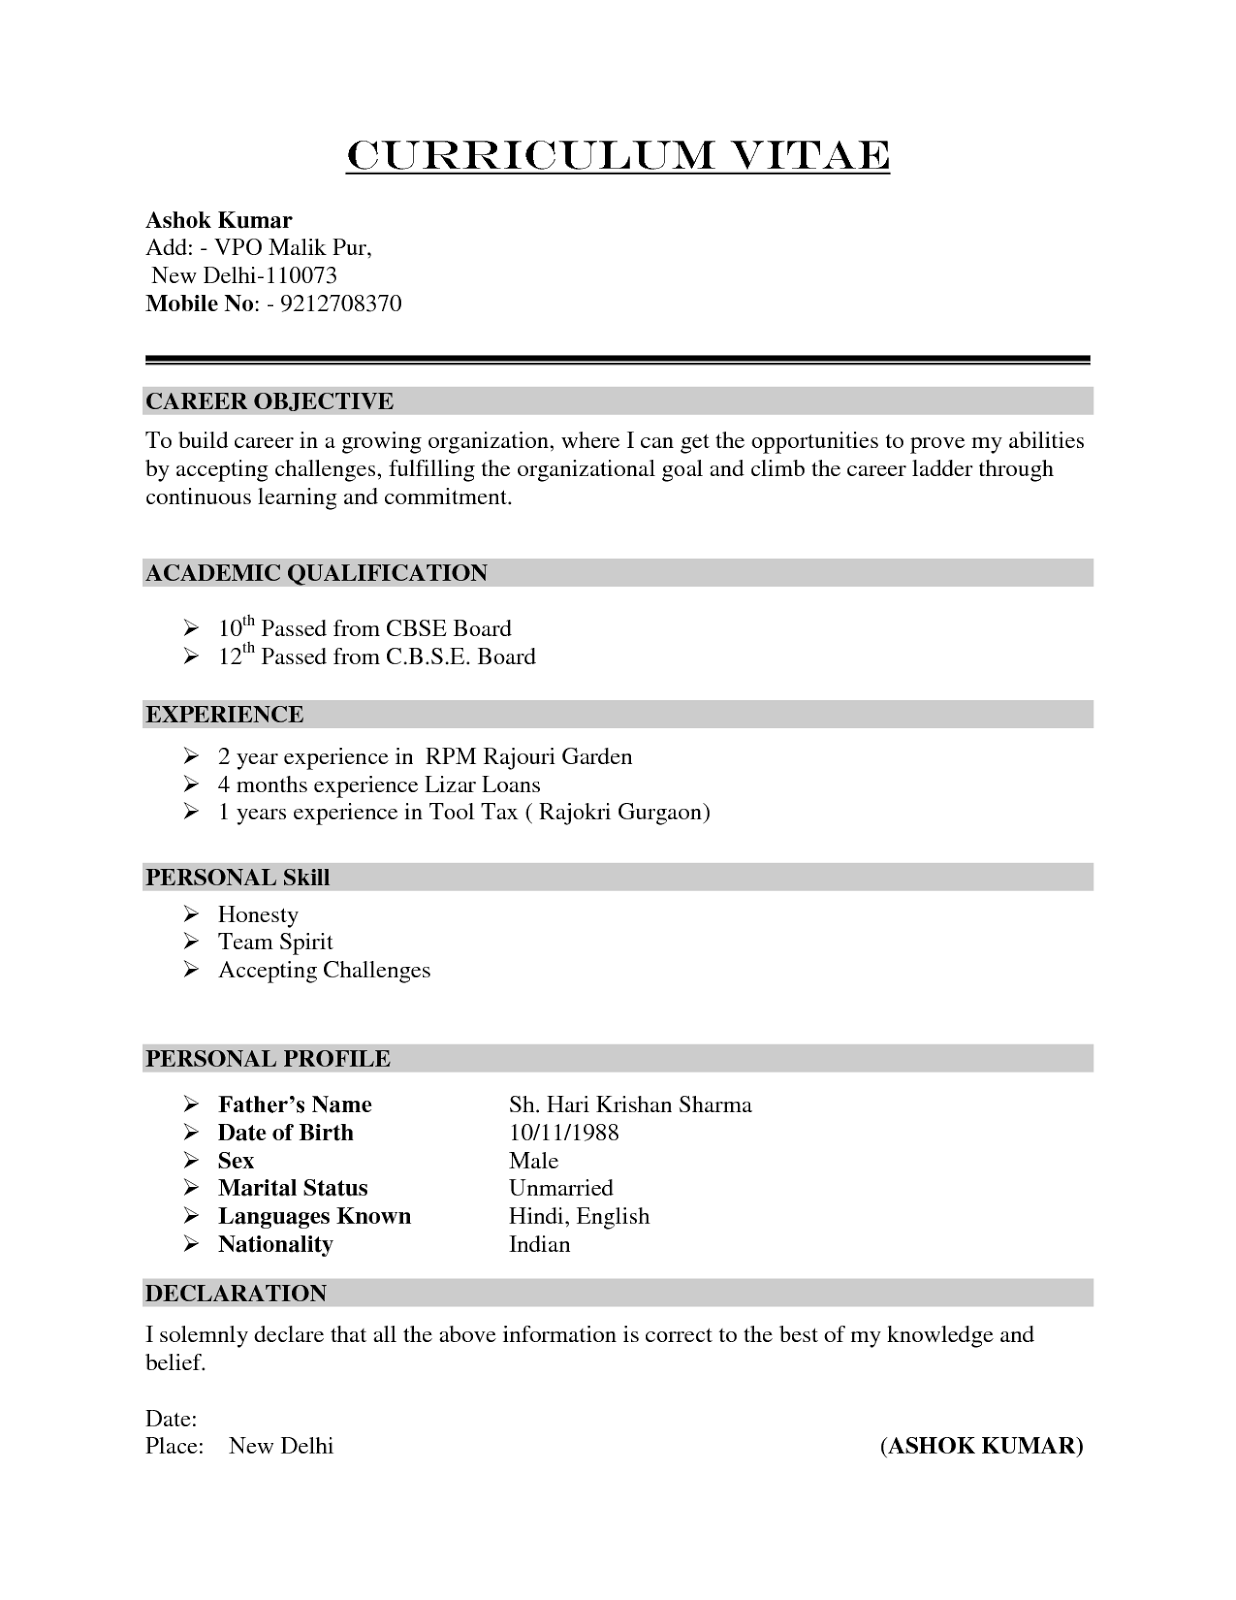 curriculum vitae sample buyer resume templates curriculum vitae sample buyer key account manager kam curriculum vitae resume example curriculum vitae english buyer